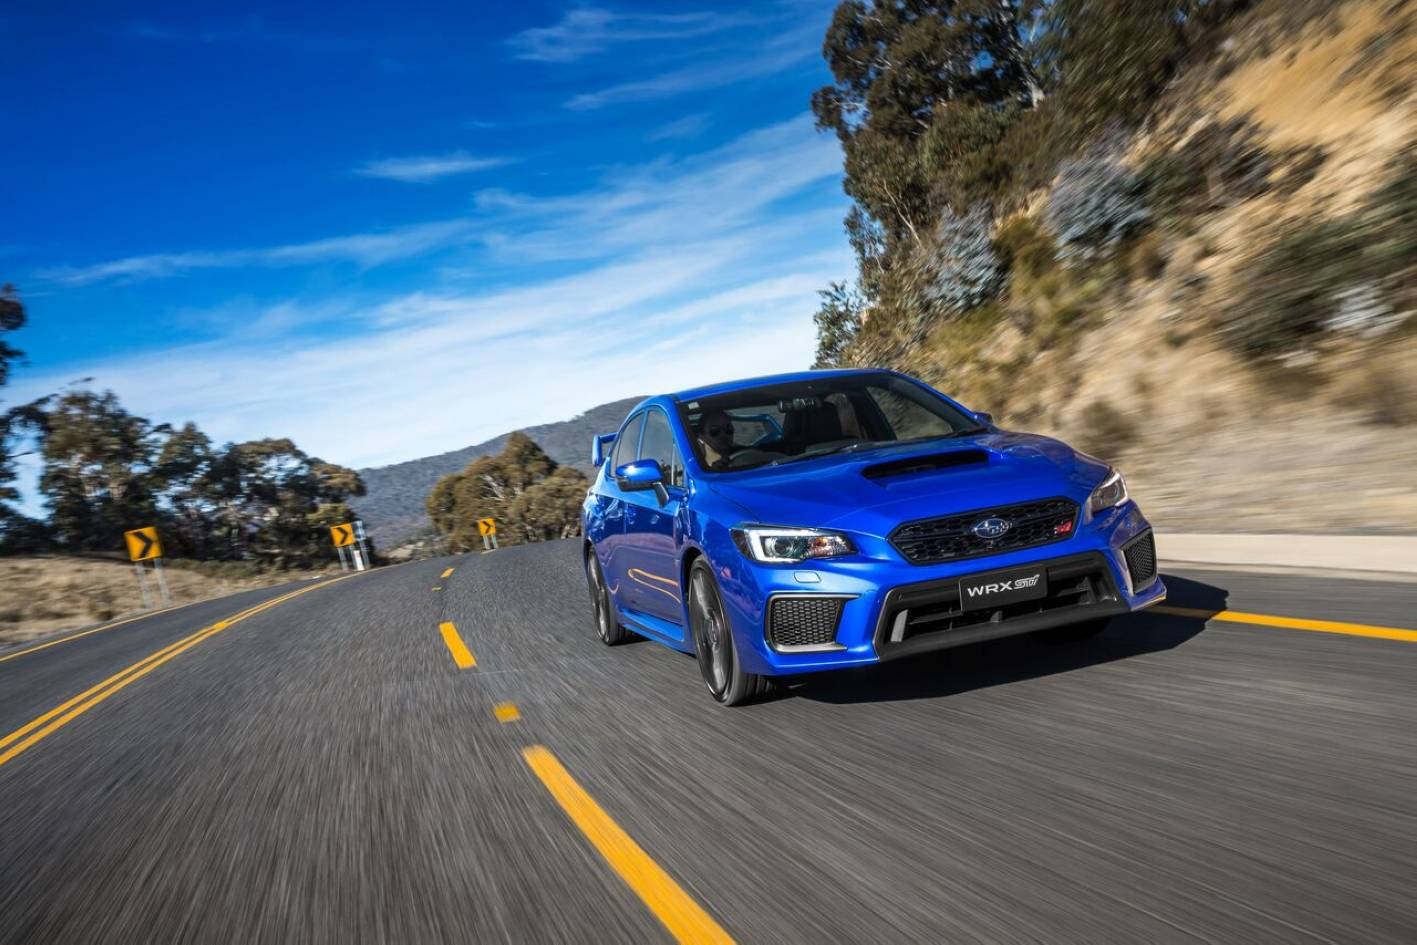 Most STI owners will never come within a bull's roar of an STI's limits - which is partly good, because loss of control in an STI is going to be insanely fast...